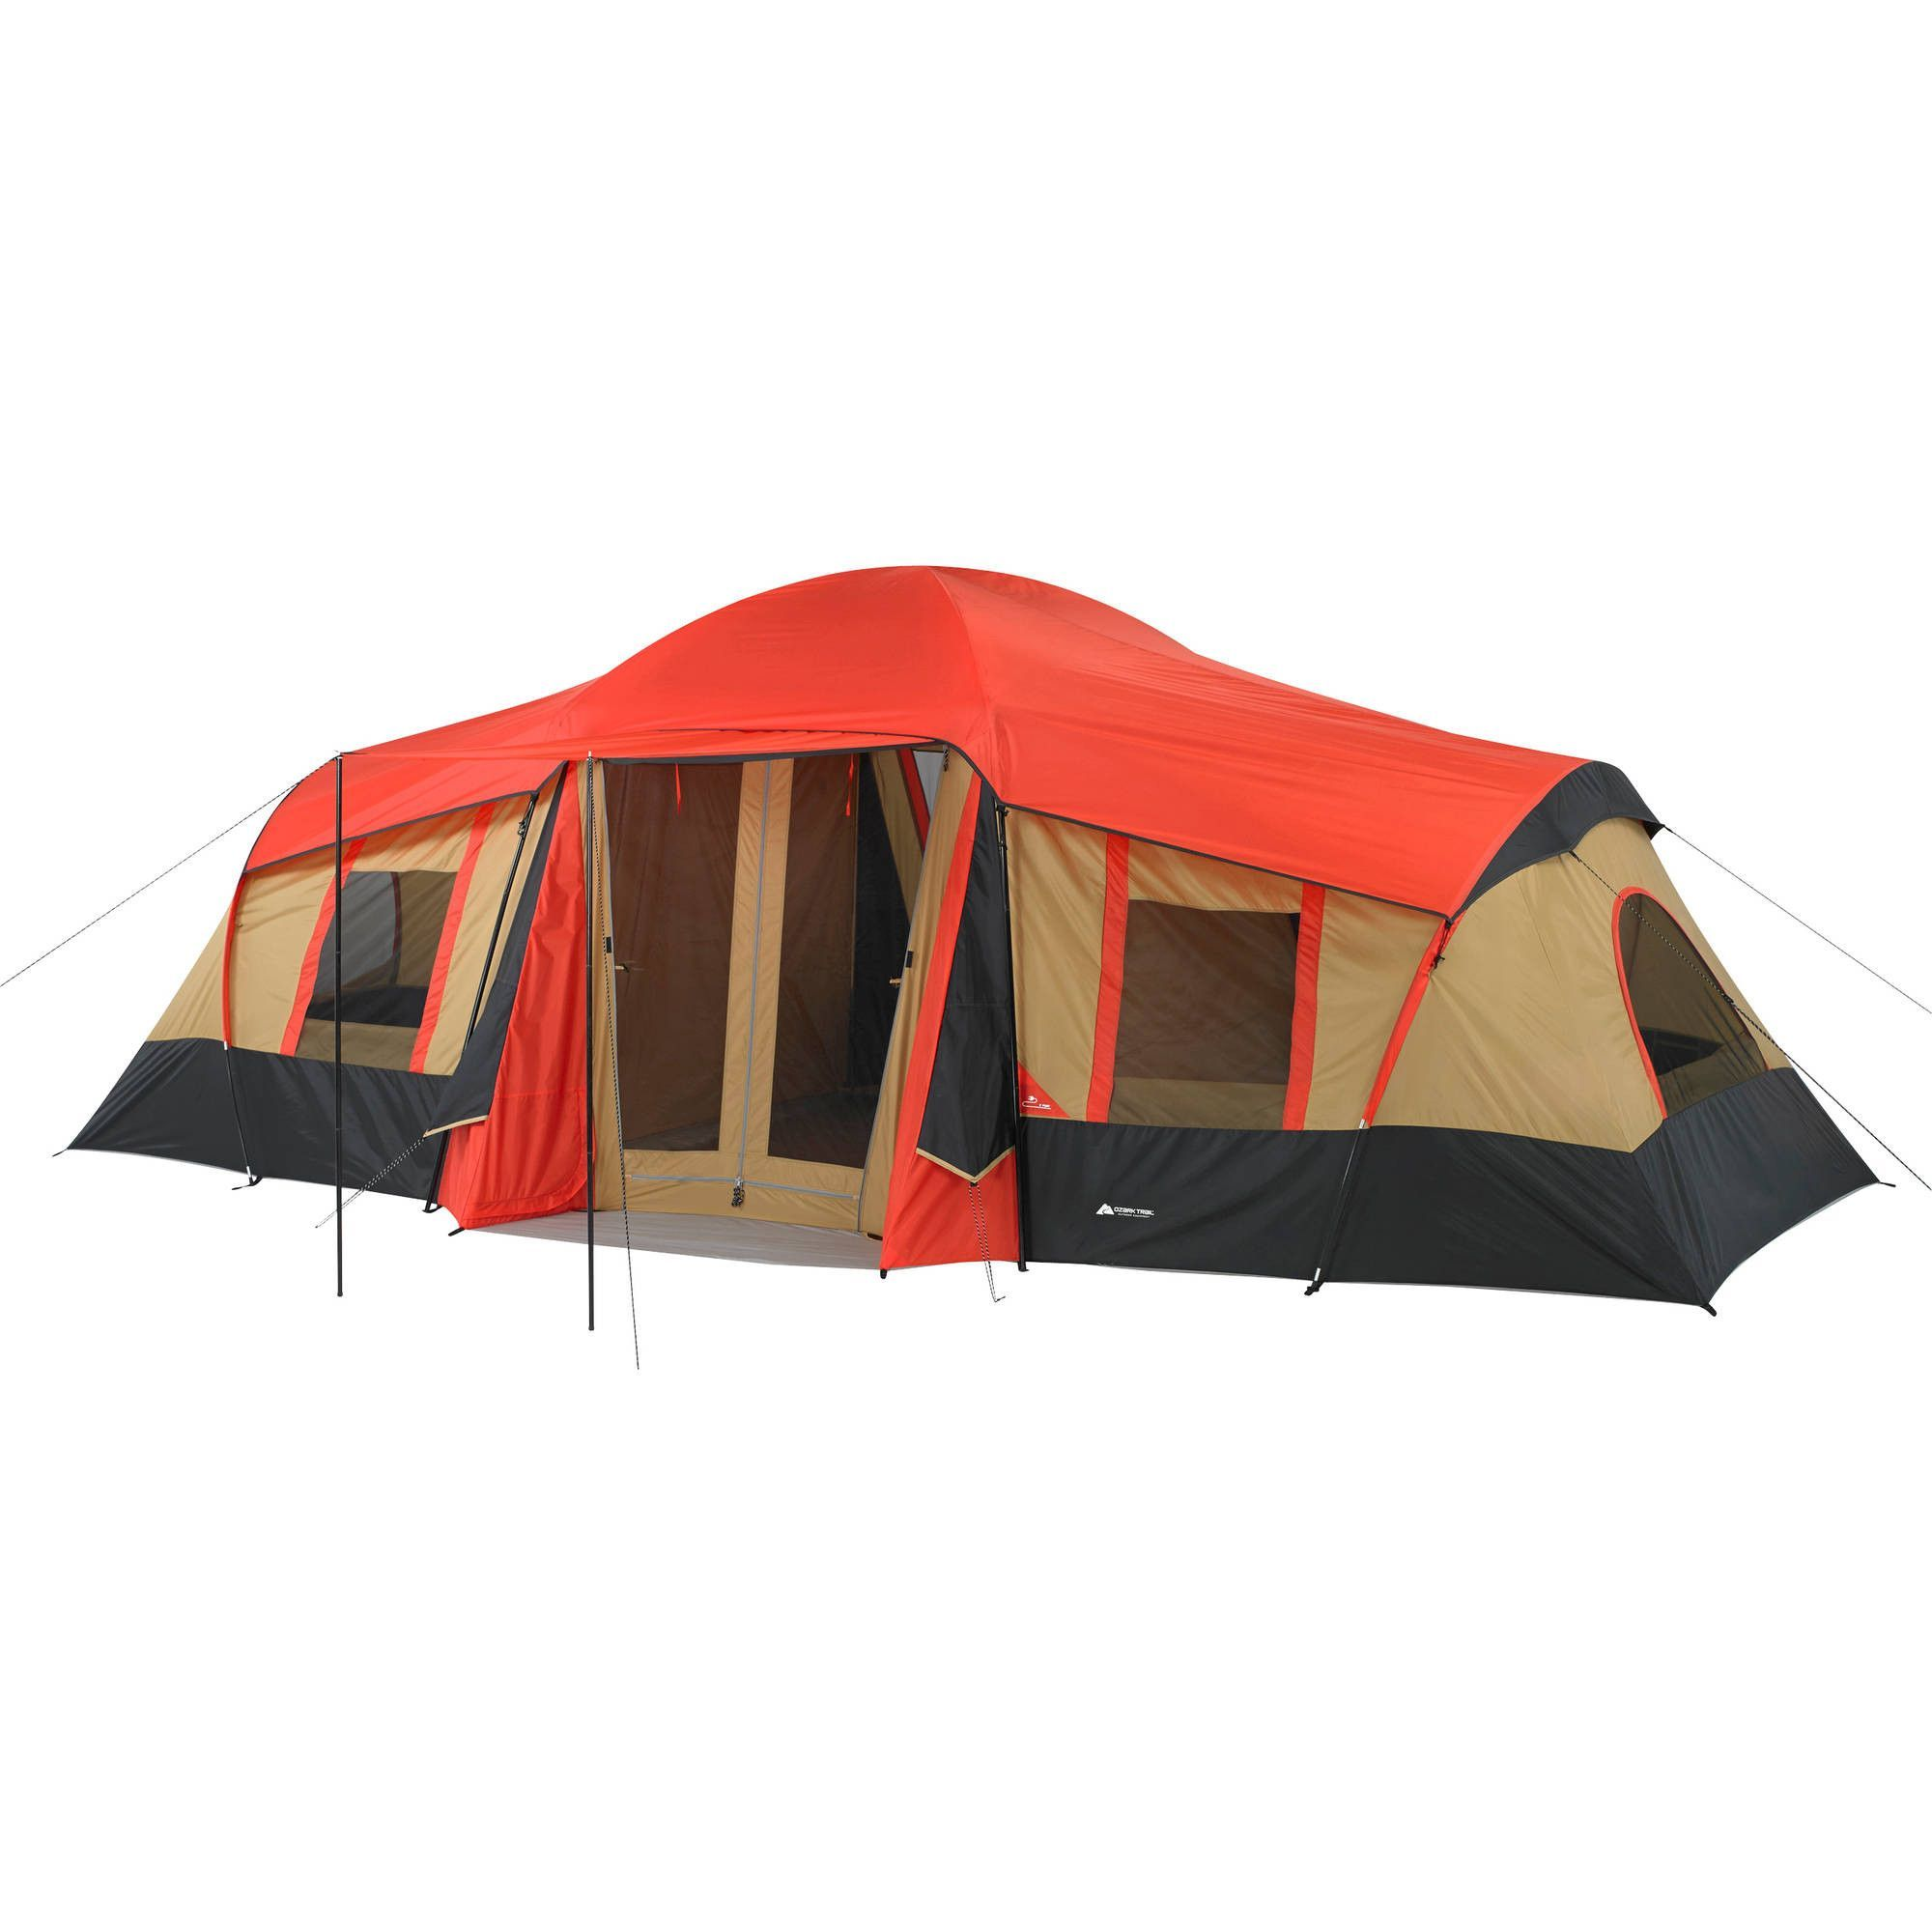 Camping Trail 10 Person 3 Room Vacation Tent With Built In